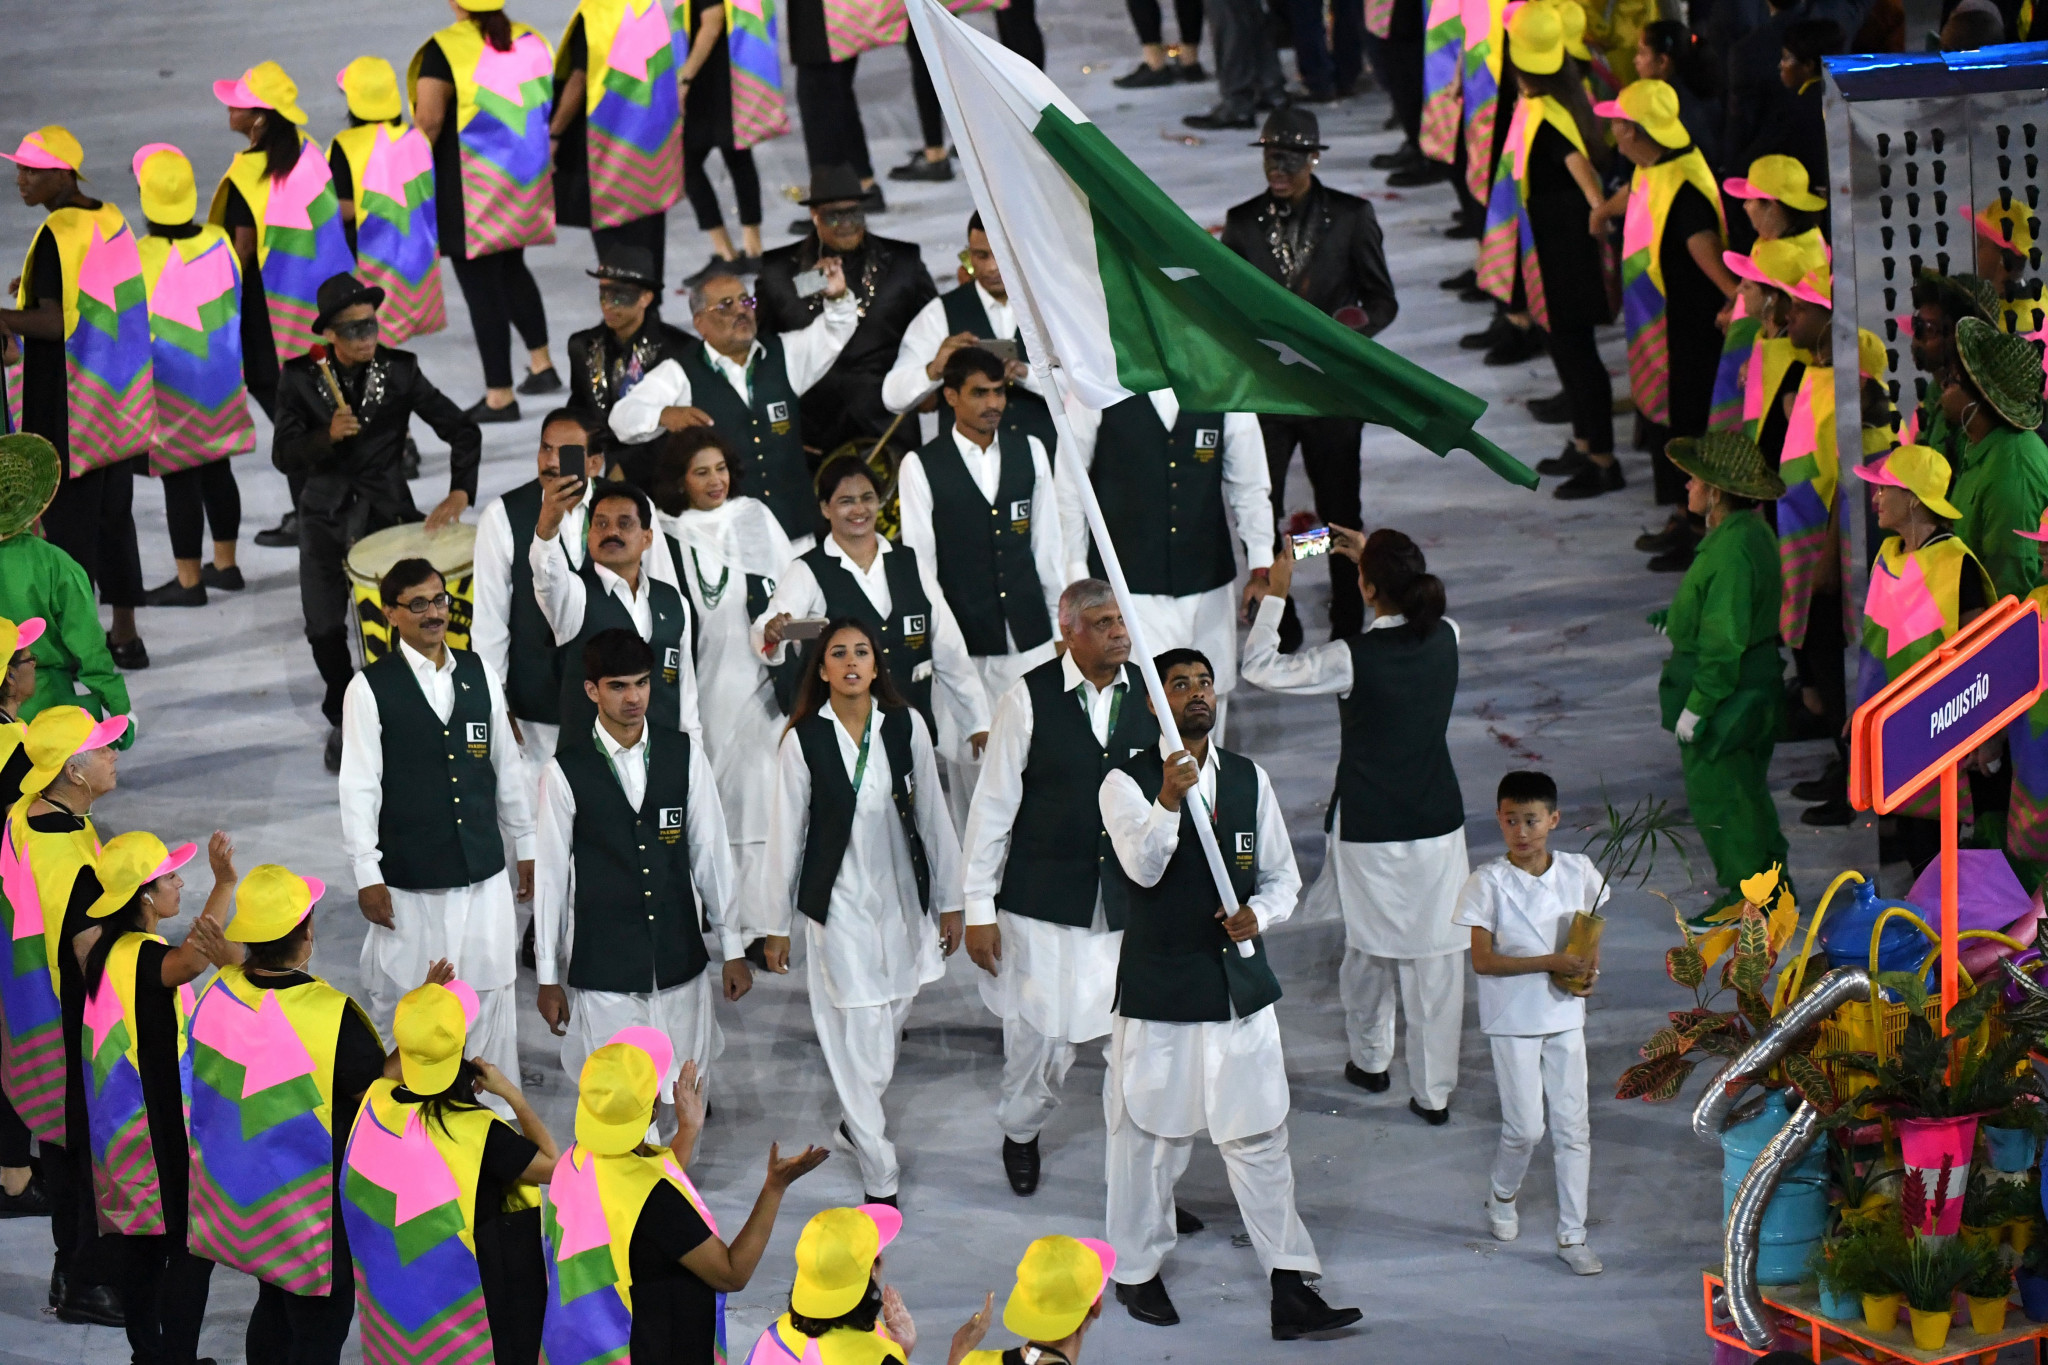 Ghulam Mustafa Bashir was Pakistan's flagbearer for the Opening Ceremony of the Rio 2016 Olympic Games ©Getty Images